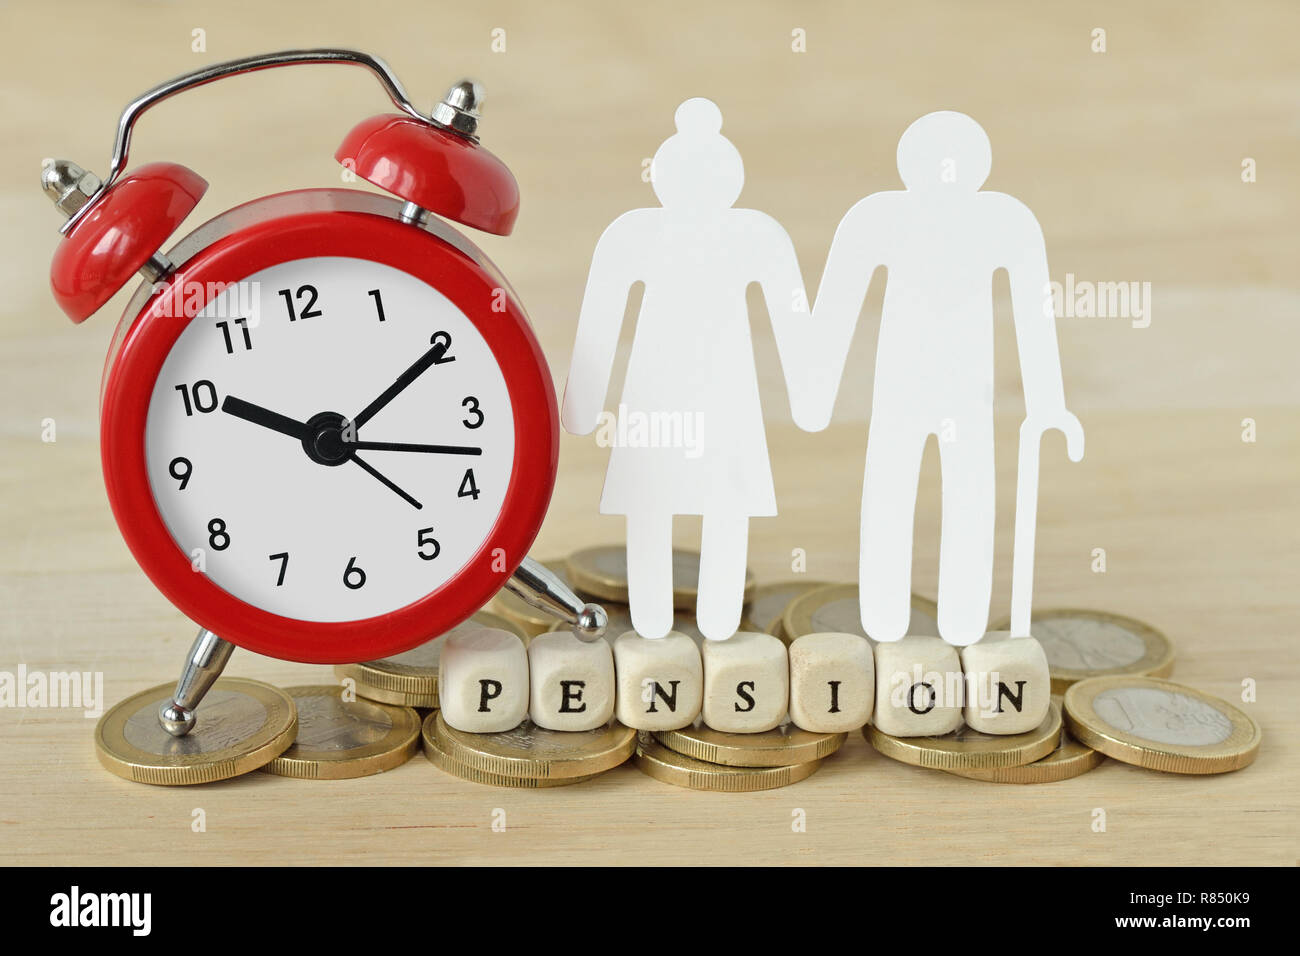 The word Pension written with wooden blocks, paper elderly couple and alarm clock on coins - Pension time concept - Stock Image